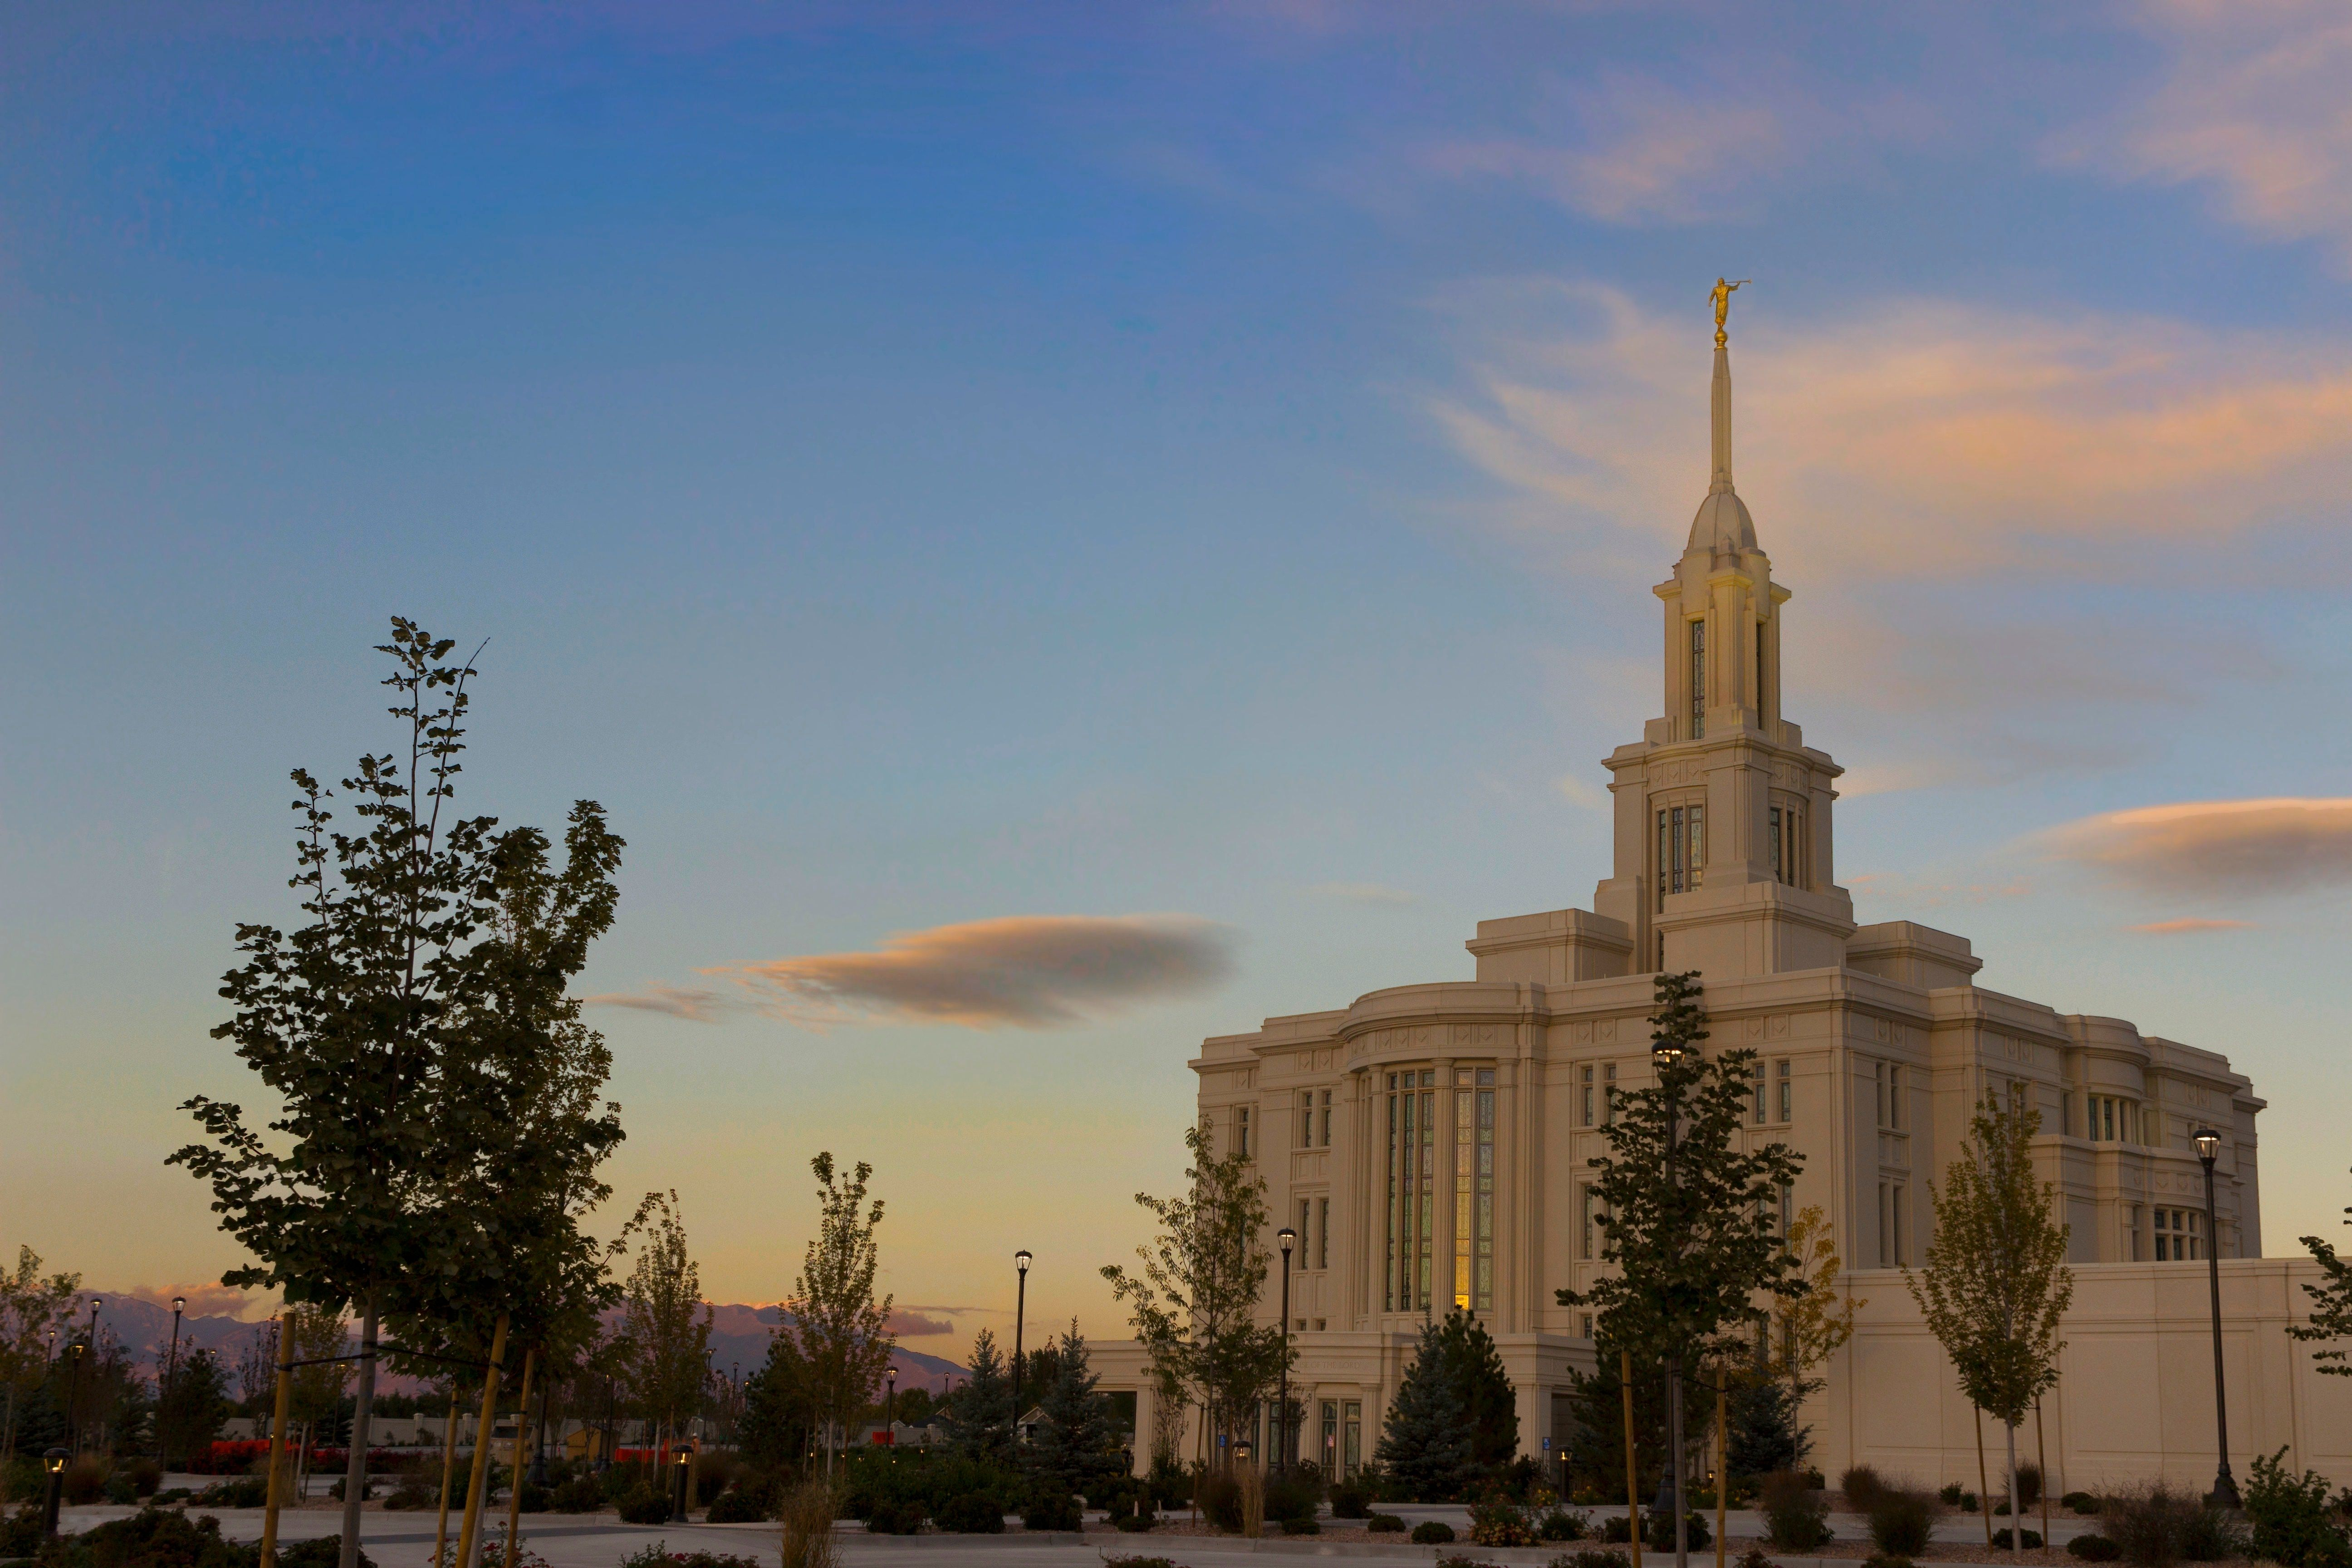 A side view of the Payson Utah Temple during the evening, including scenery.